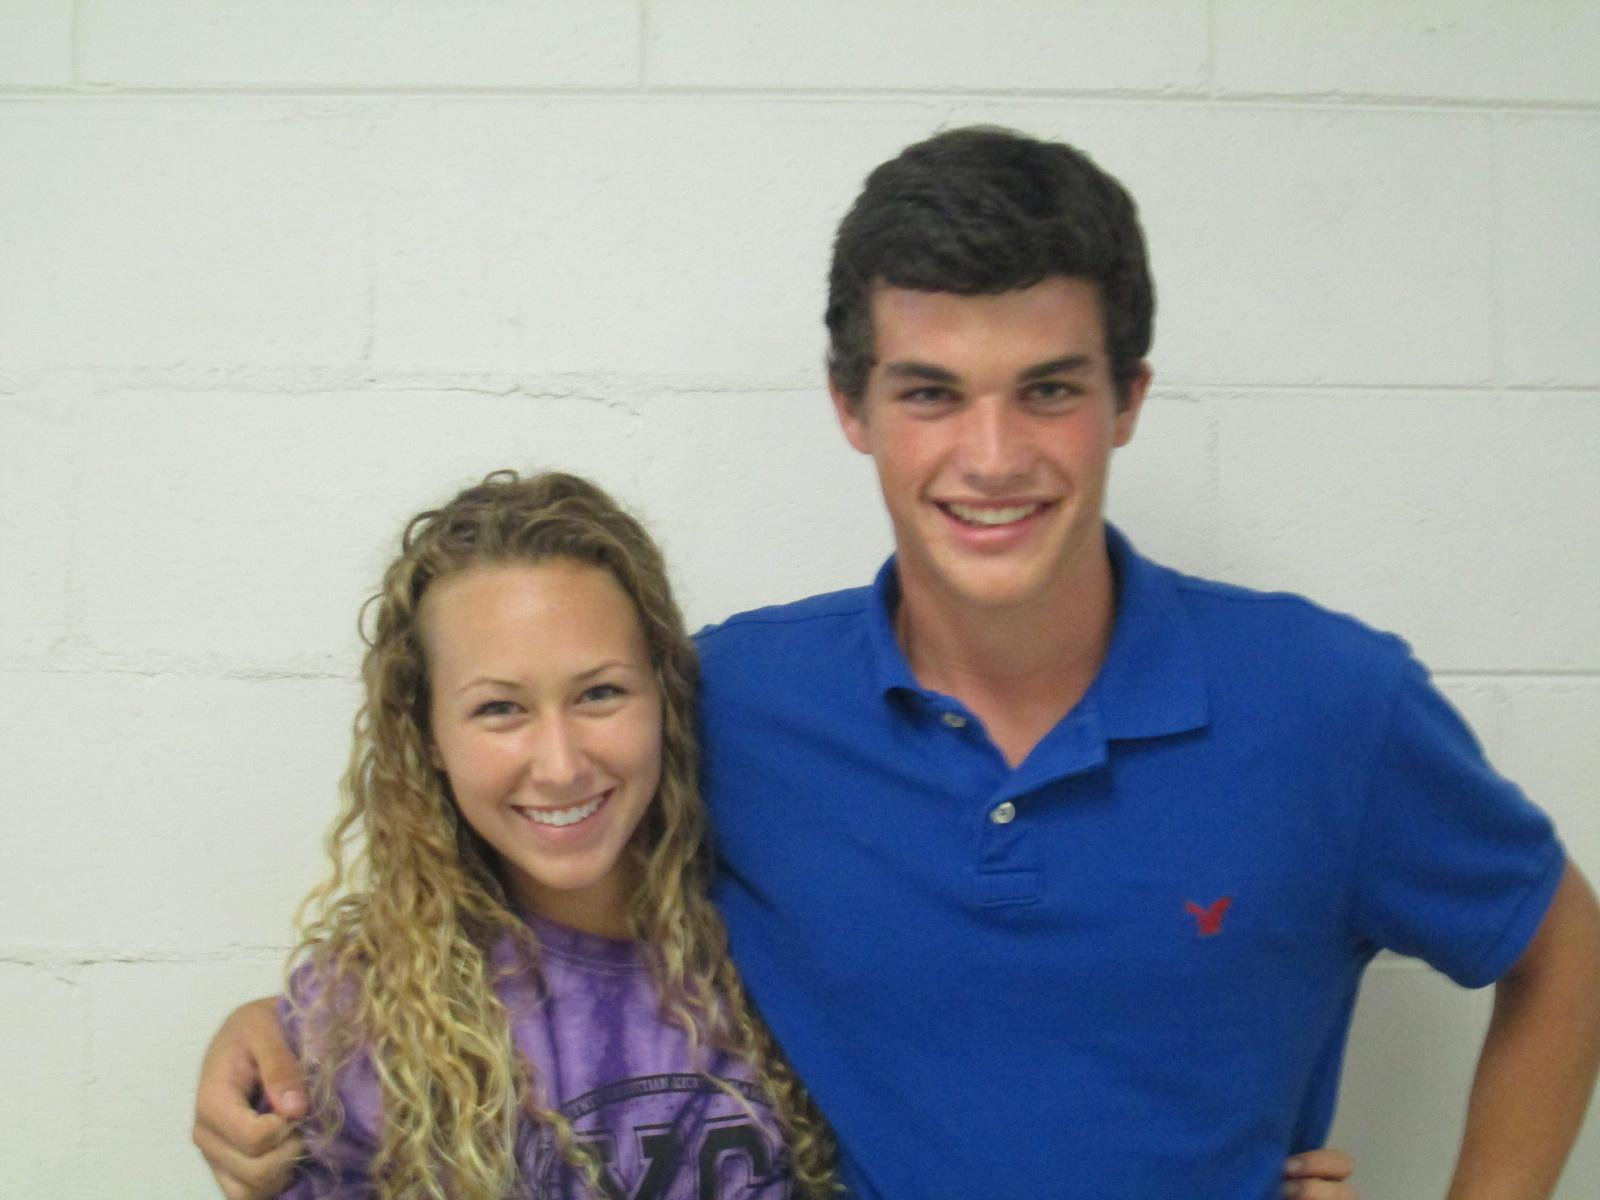 Julia Deyoung and Dylan Jurski were the top runners at Cross Country's season kickoff on September 8, 2012.